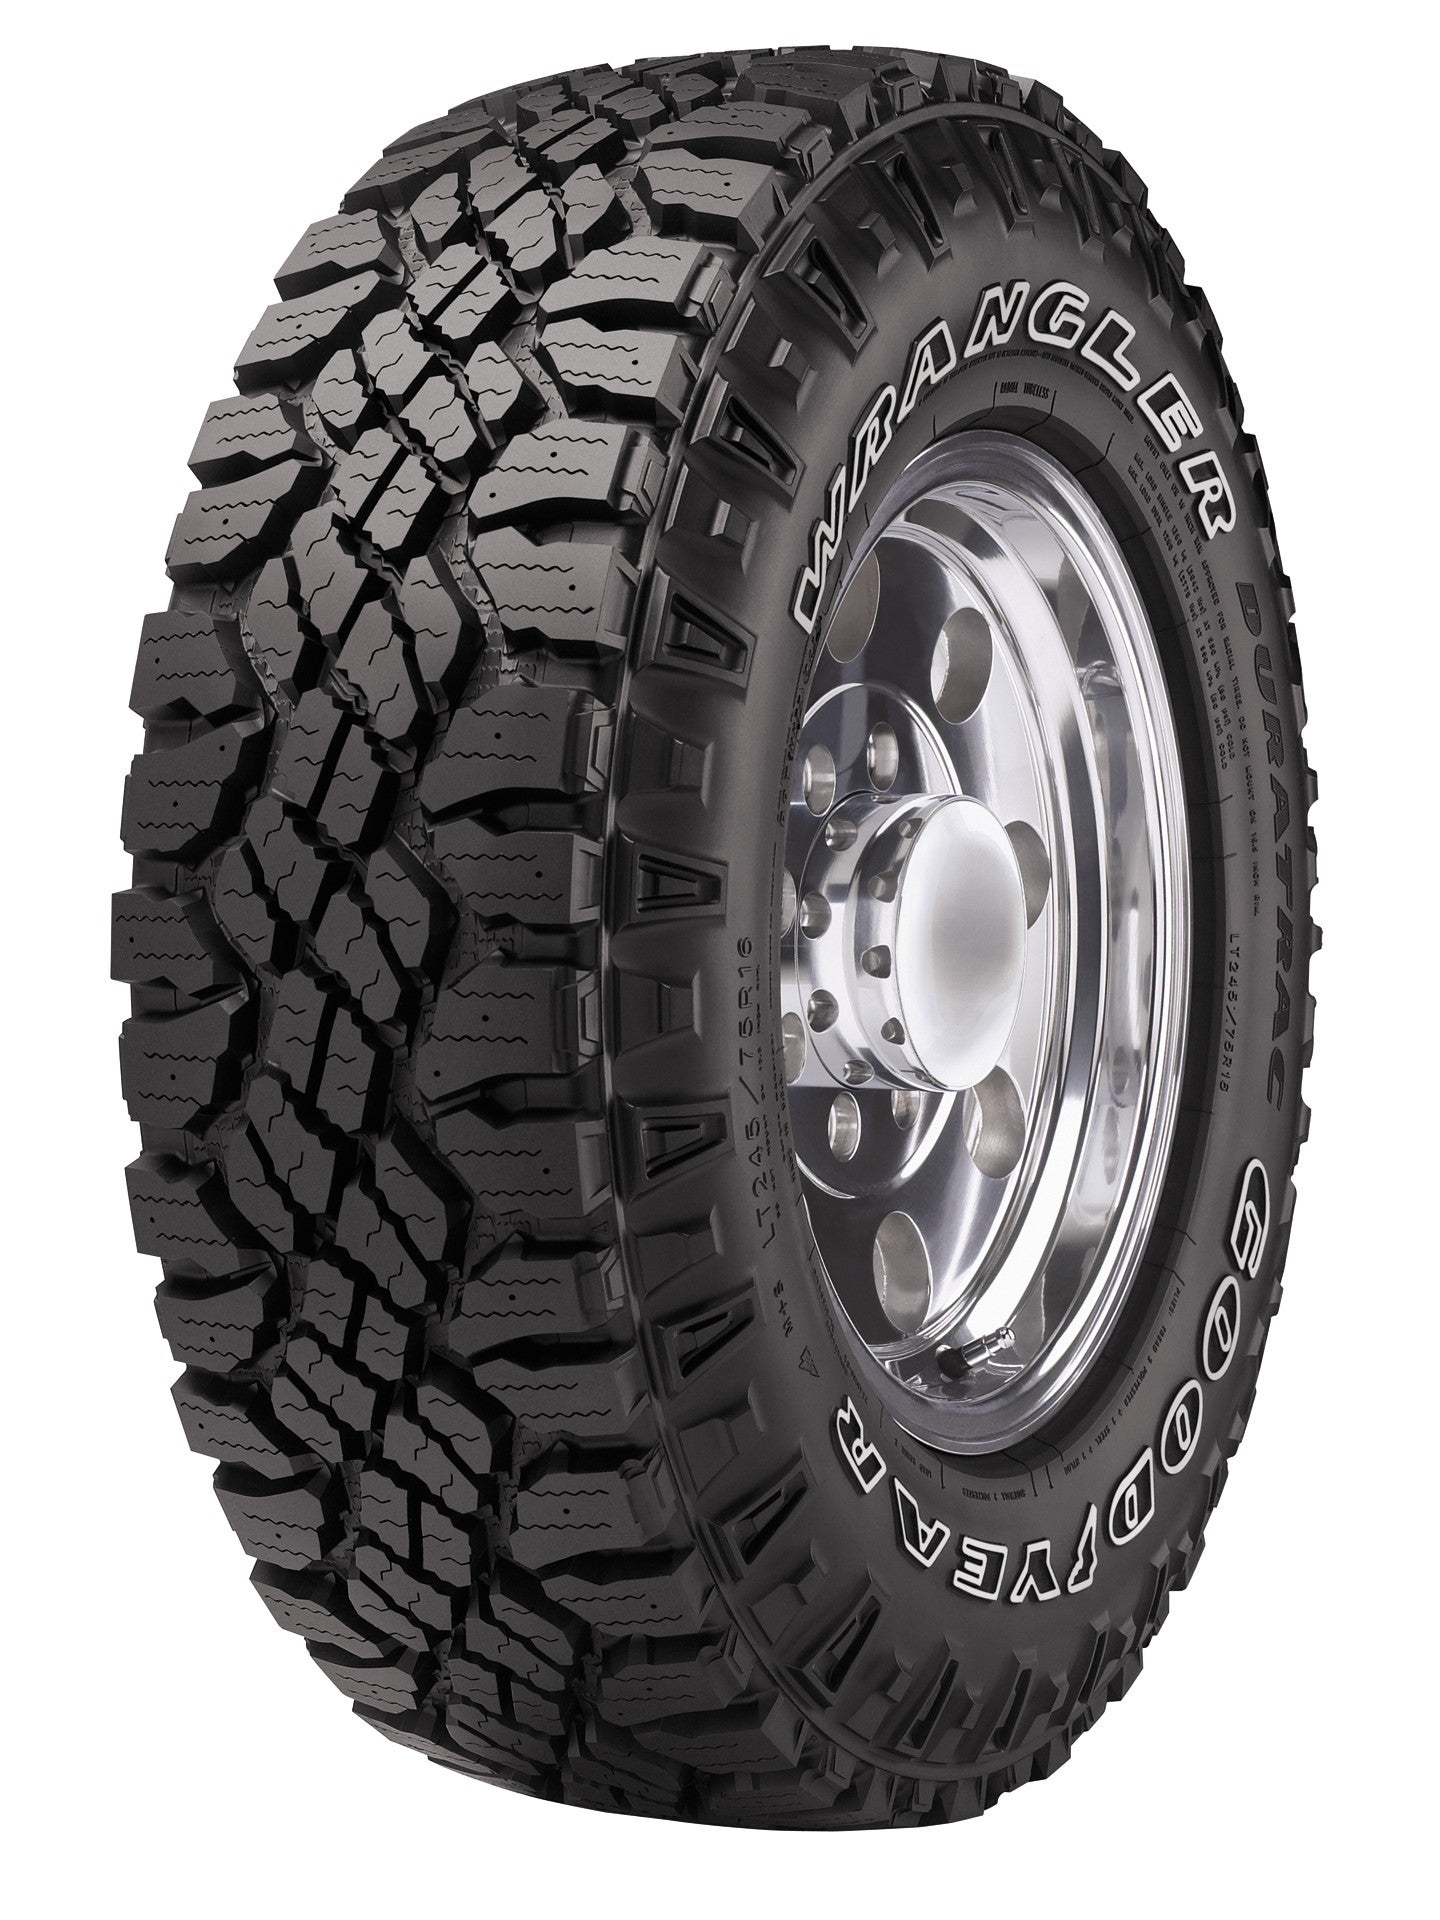 Expect to get plenty of use out of these tires if you spend a majority of the time off-road.